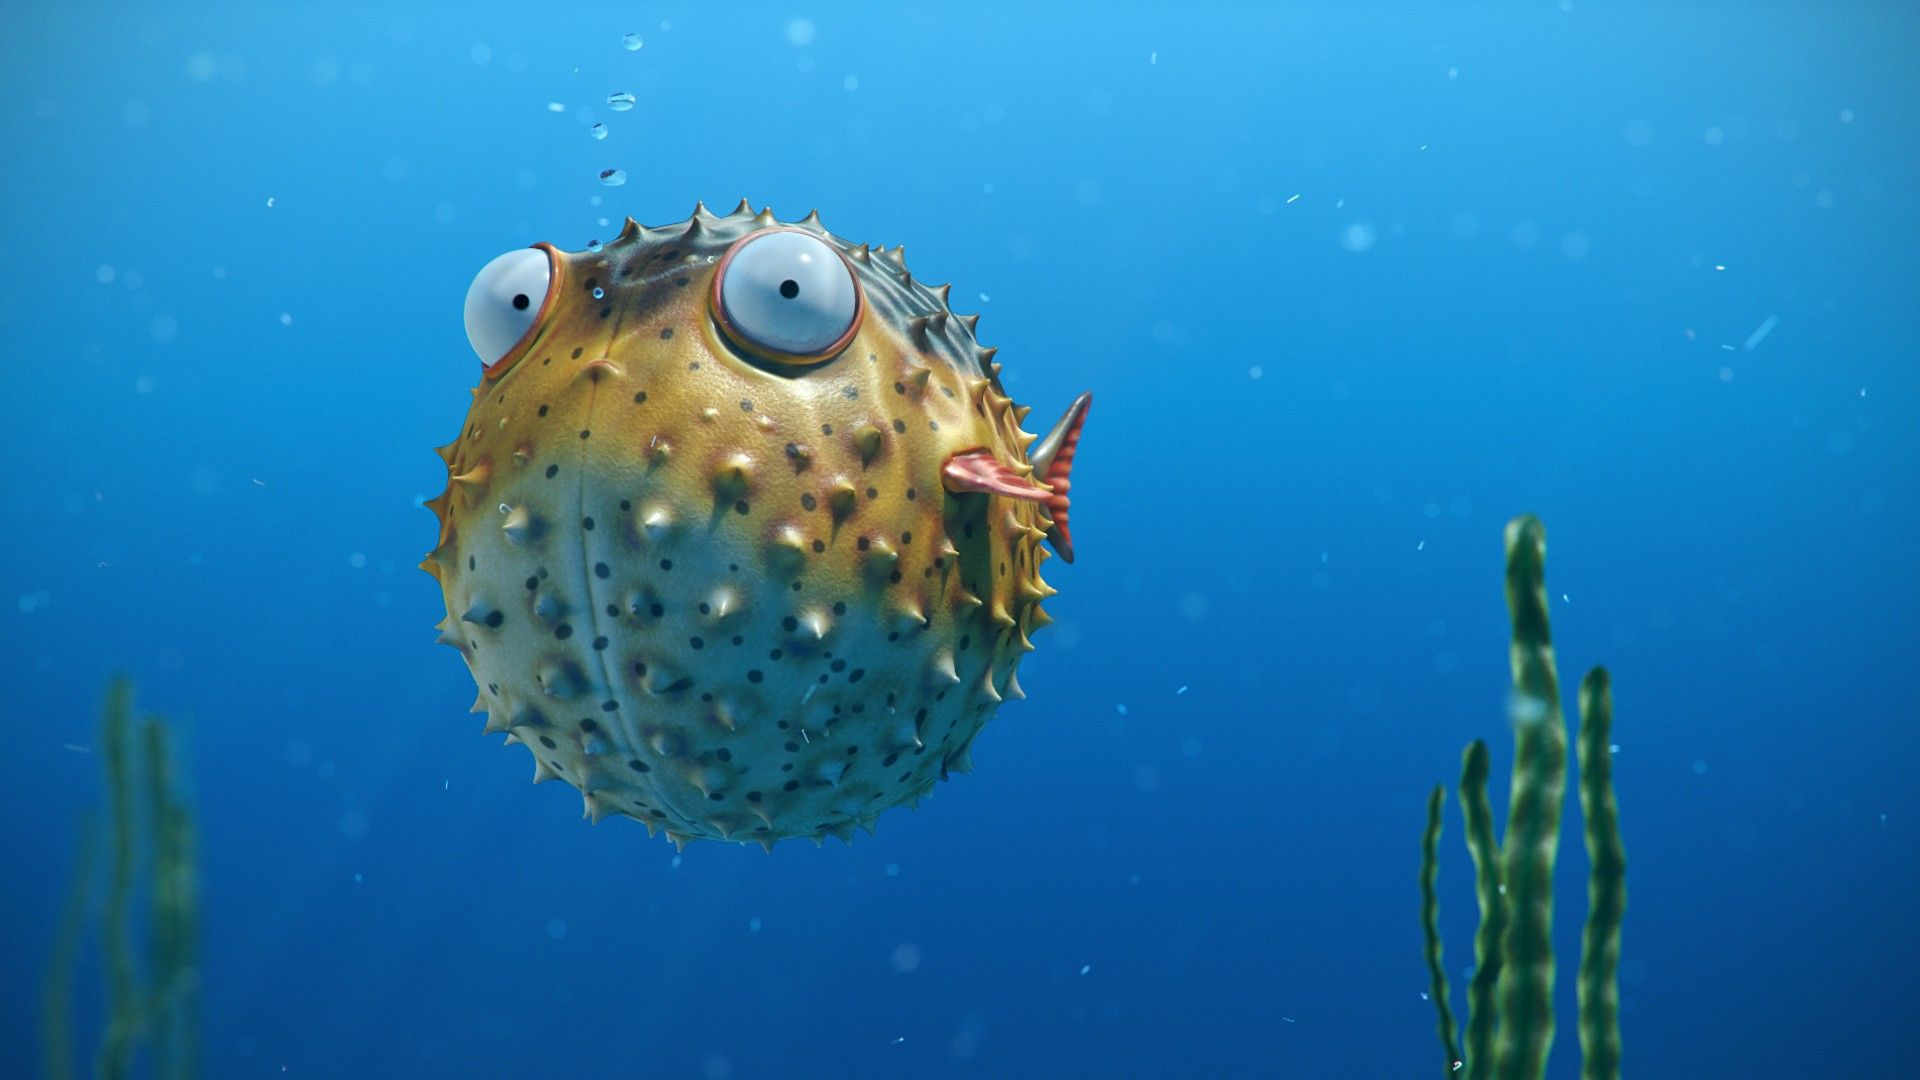 Blowfish Hd Wallpapers Underwater Wallpaper Fish Art Fish Wallpaper